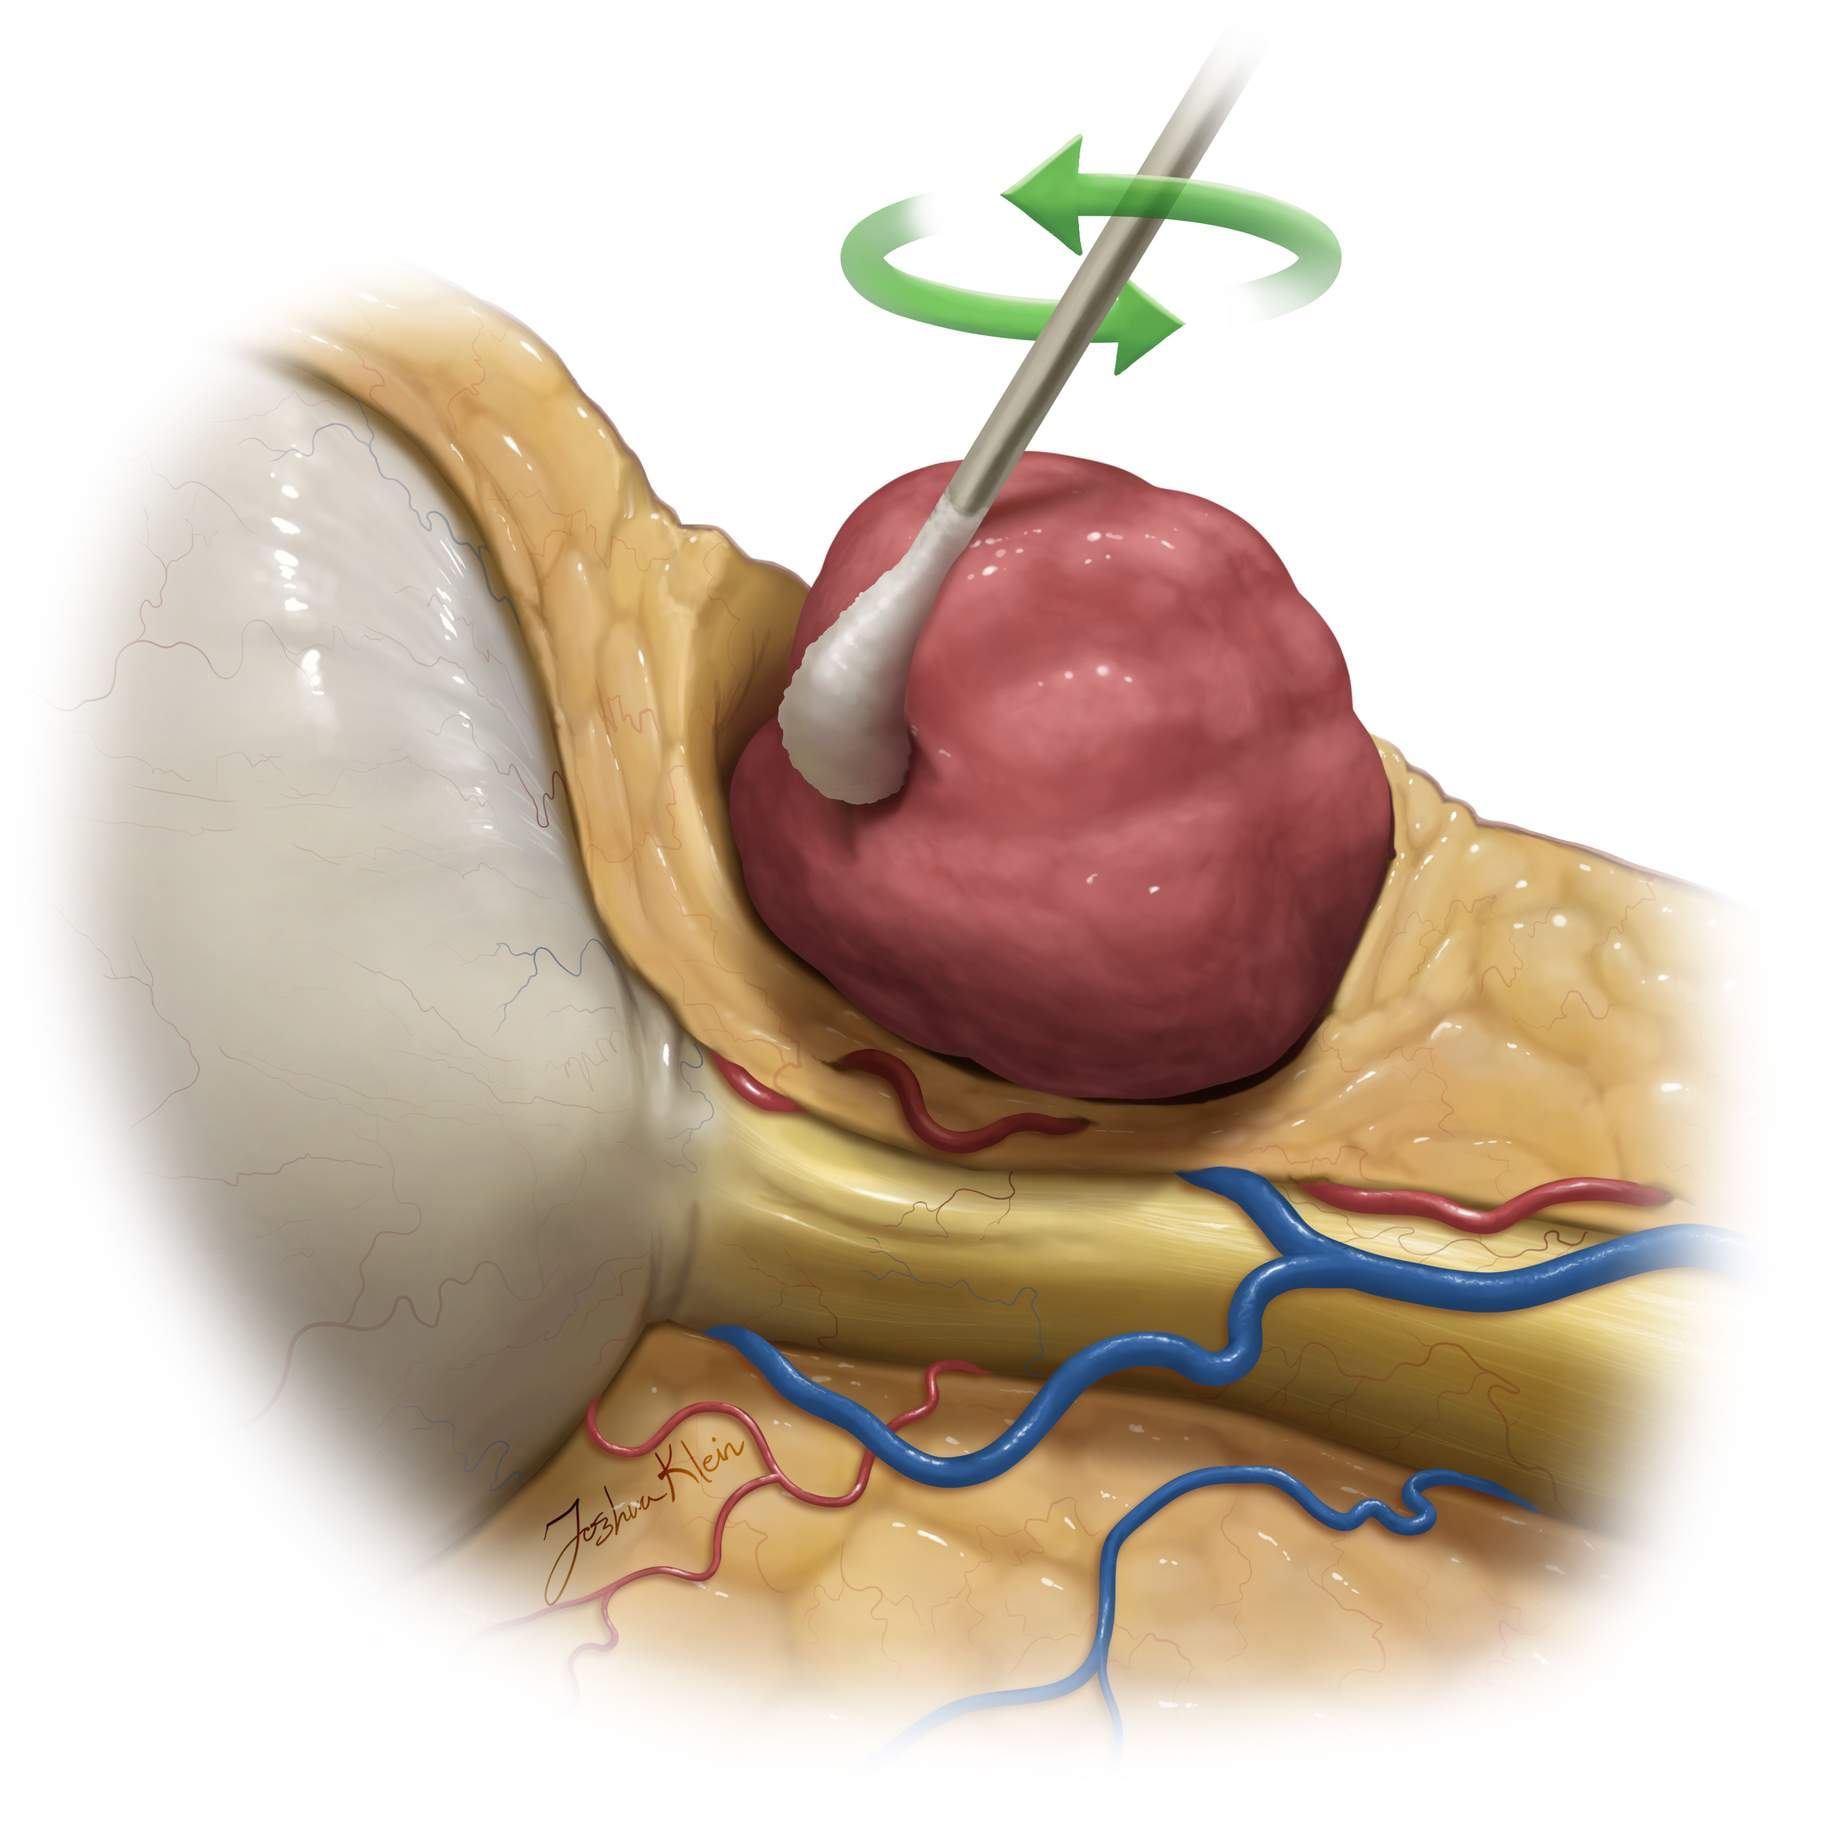 Figure 10: In this sagittal view, the rolling motion of the Q-tip in dissecting the fat away from the tumor capsule is demonstrated.